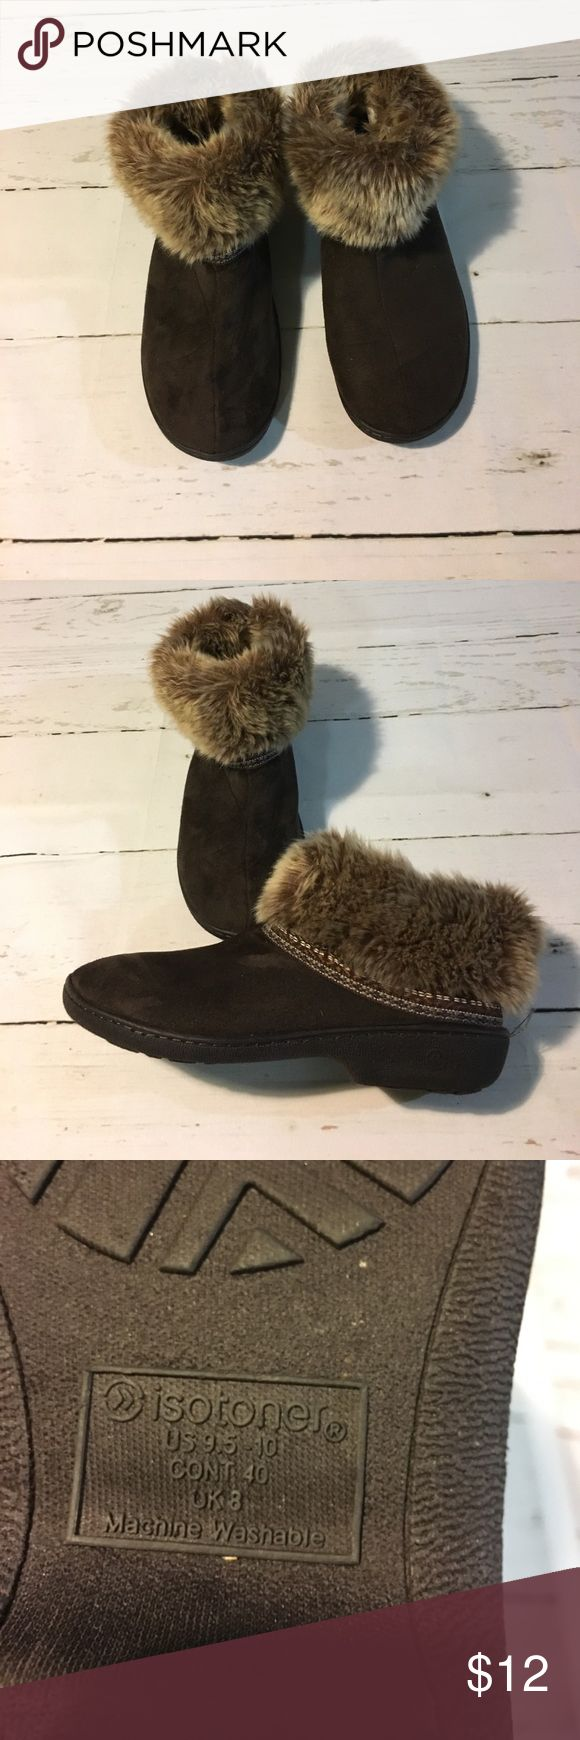 Isotoner Slippers Brown Slippers by Isotoner. Gently used in great condition Isotoner Shoes Slippers